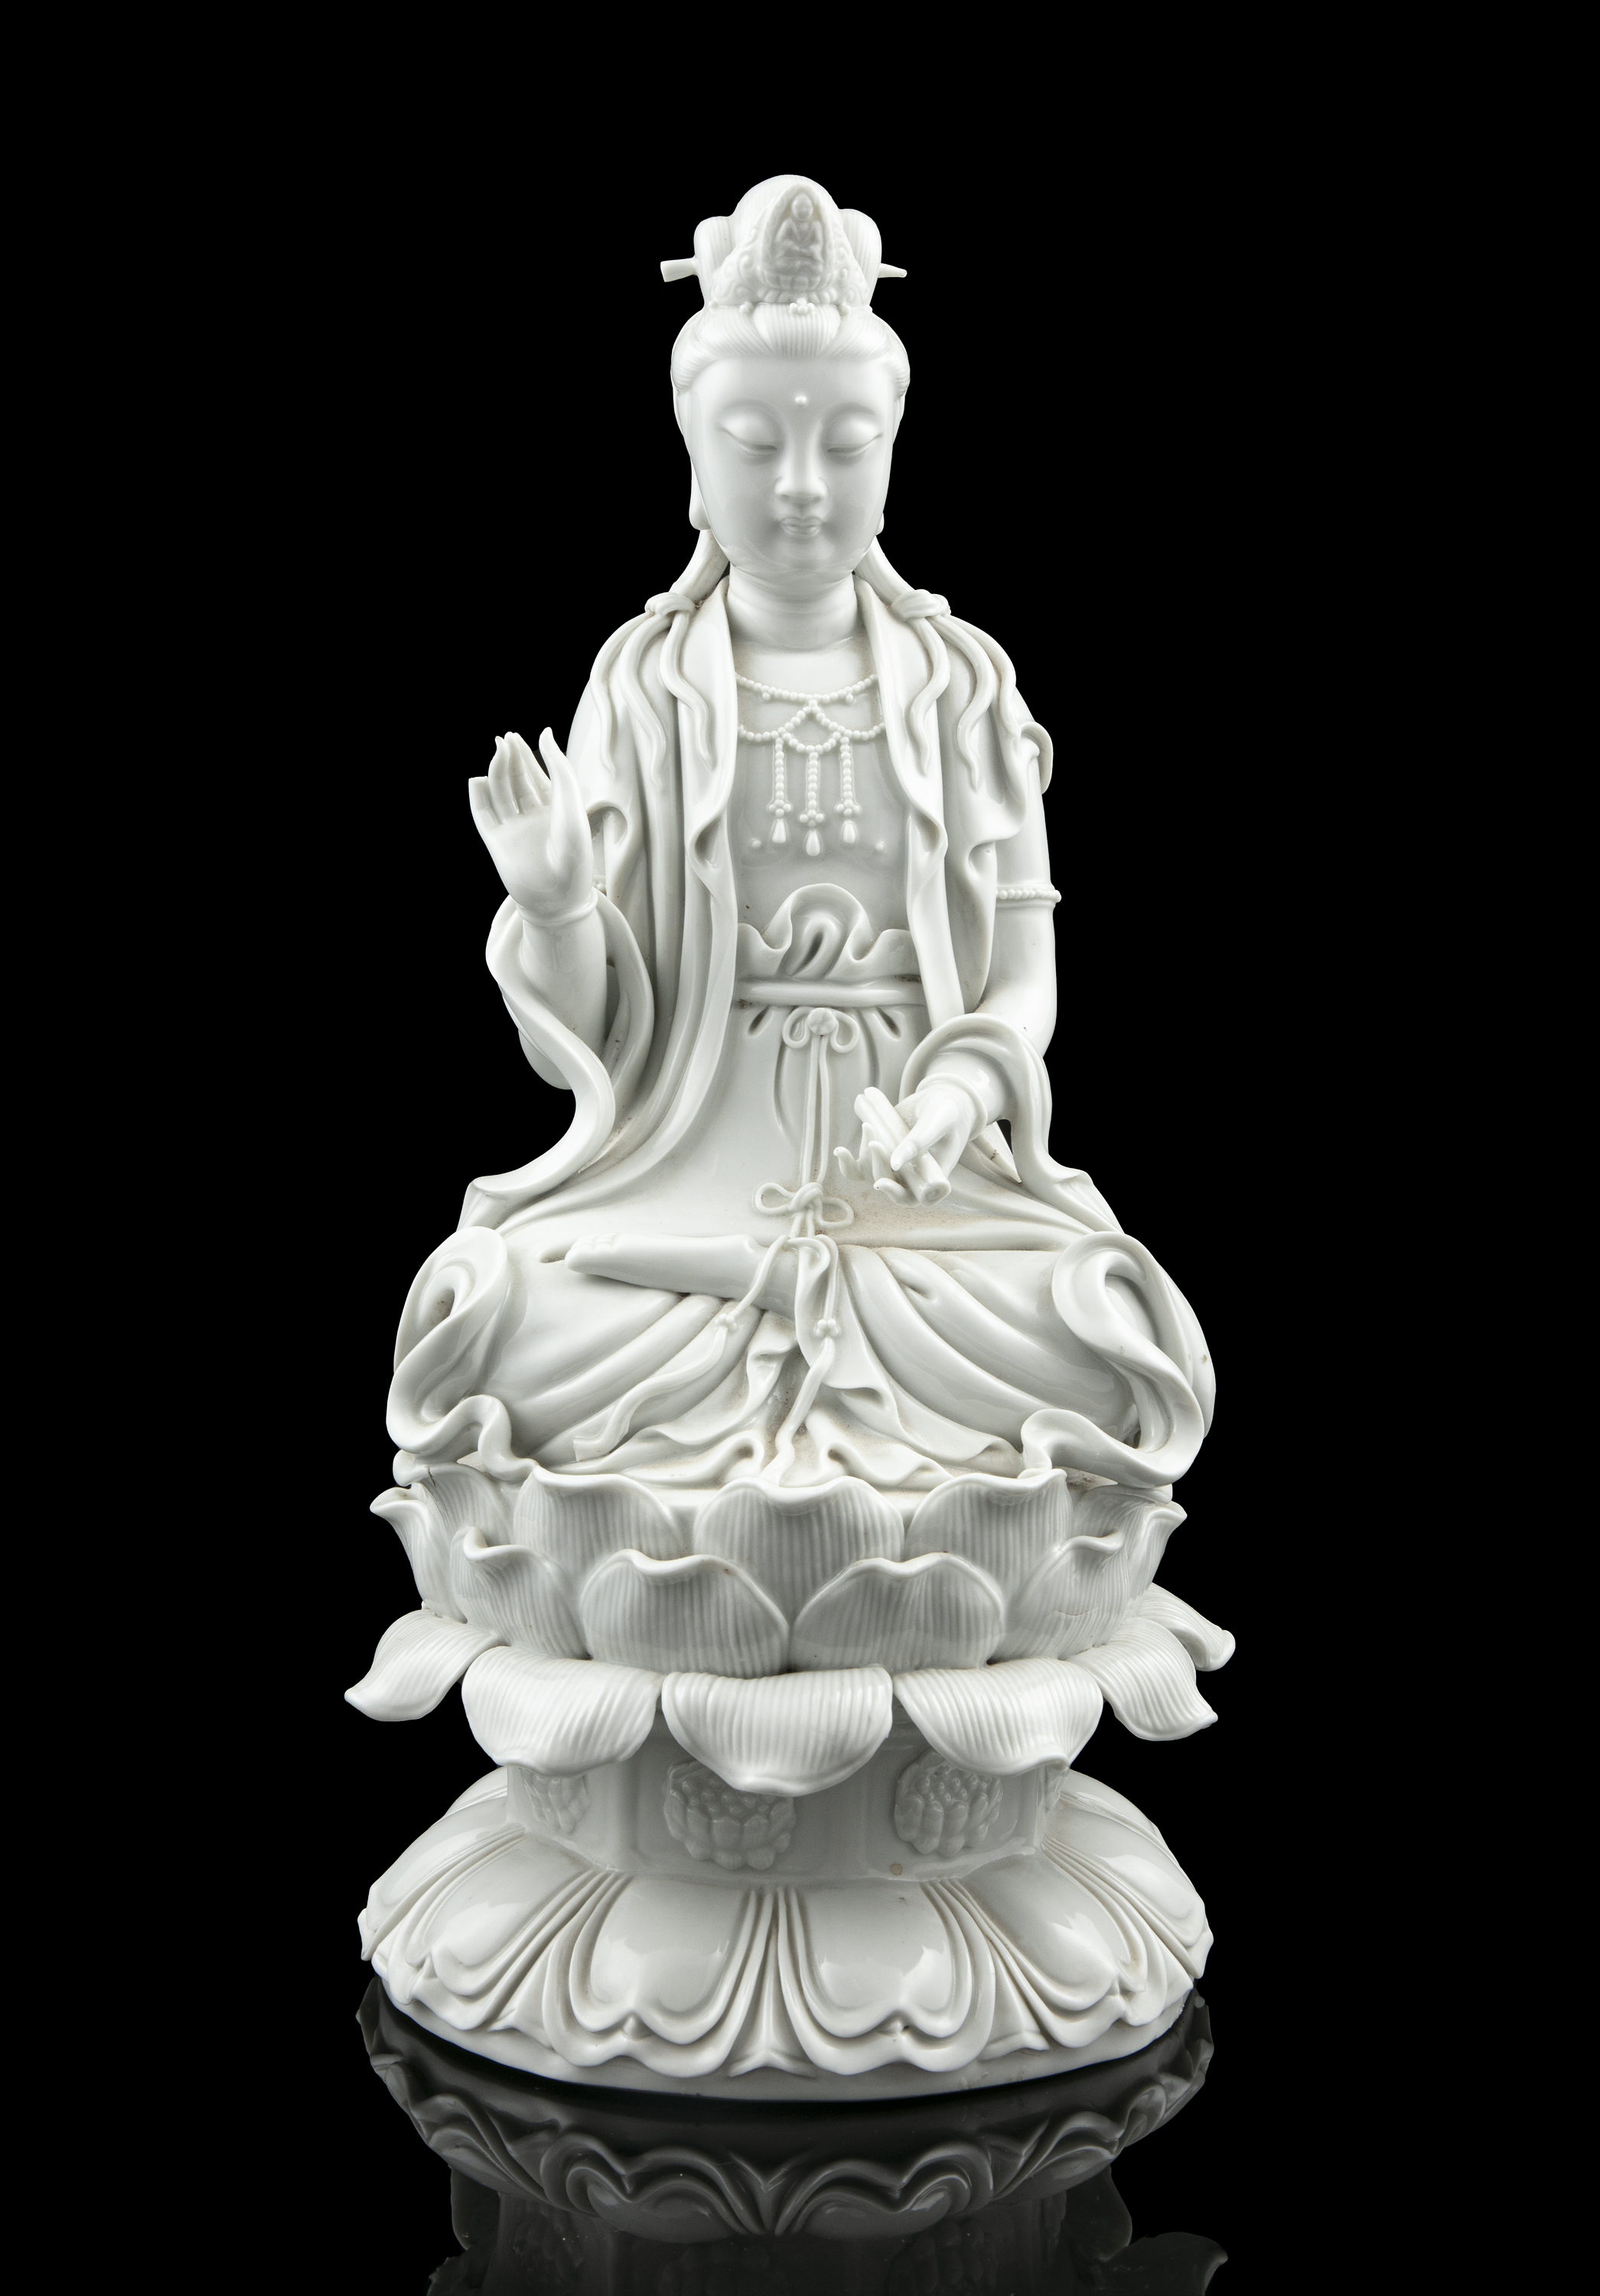 A LARGE DEHUA FIGURE OF A SEATED GUANYIN China, 19th to 20th century The goddess of mercy is - Image 2 of 18